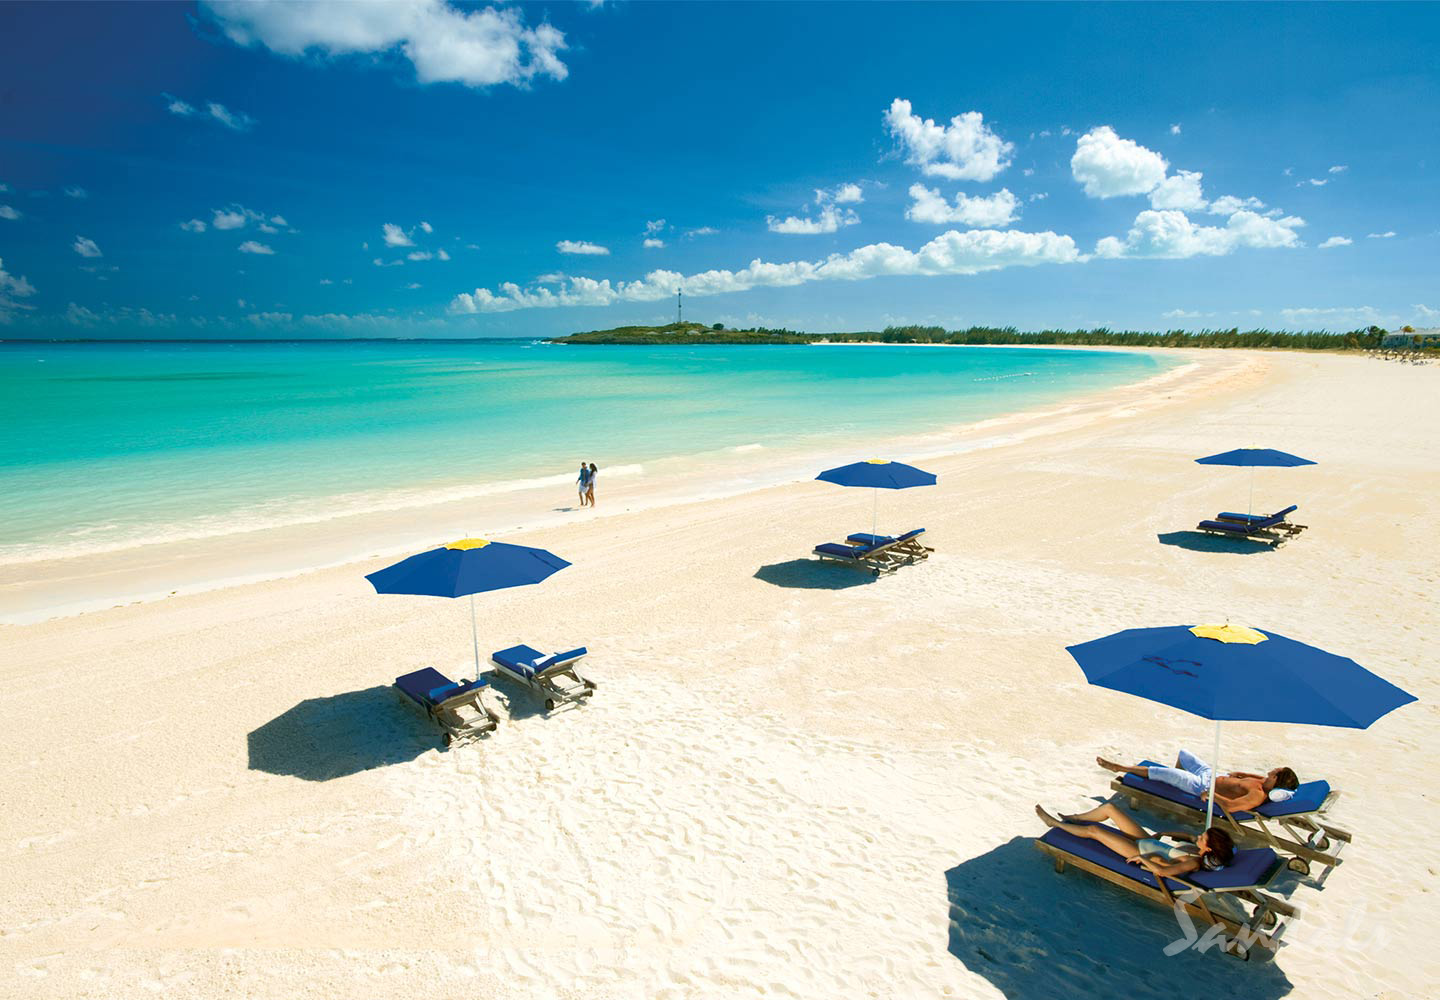 Travel Agency All-Inclusive Resort Sandals Emerald Bay 006